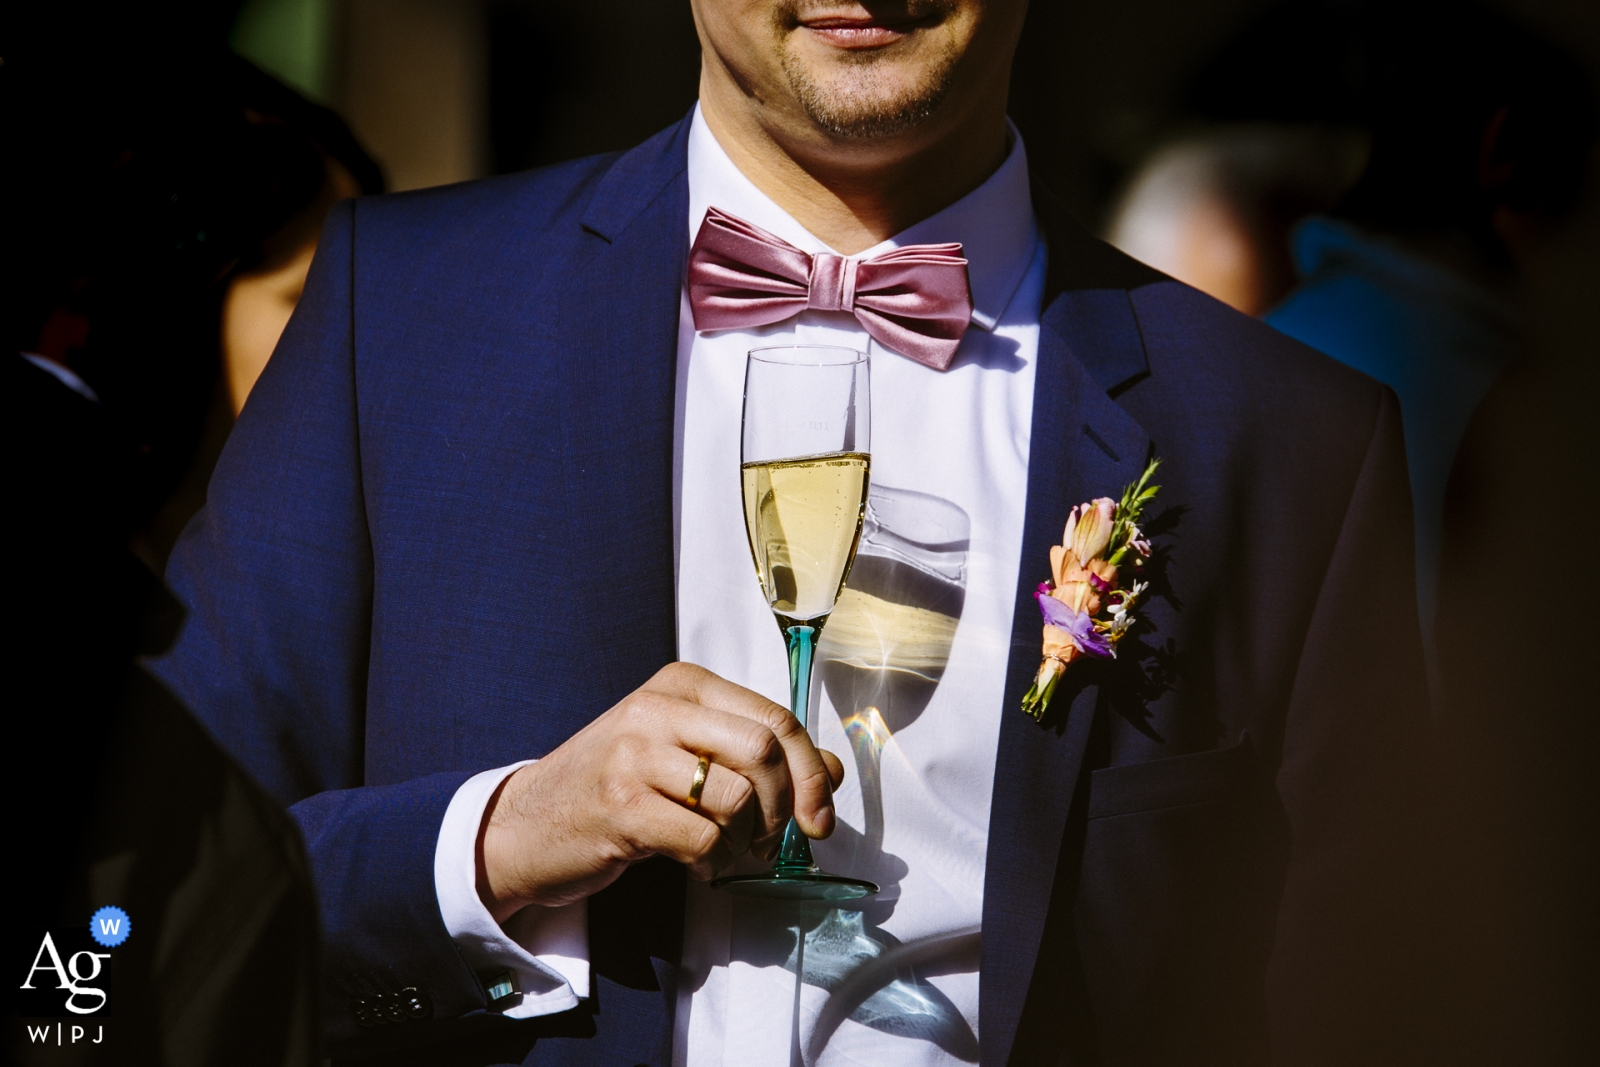 Germany creative wedding photography | detail of man with champagne in glass